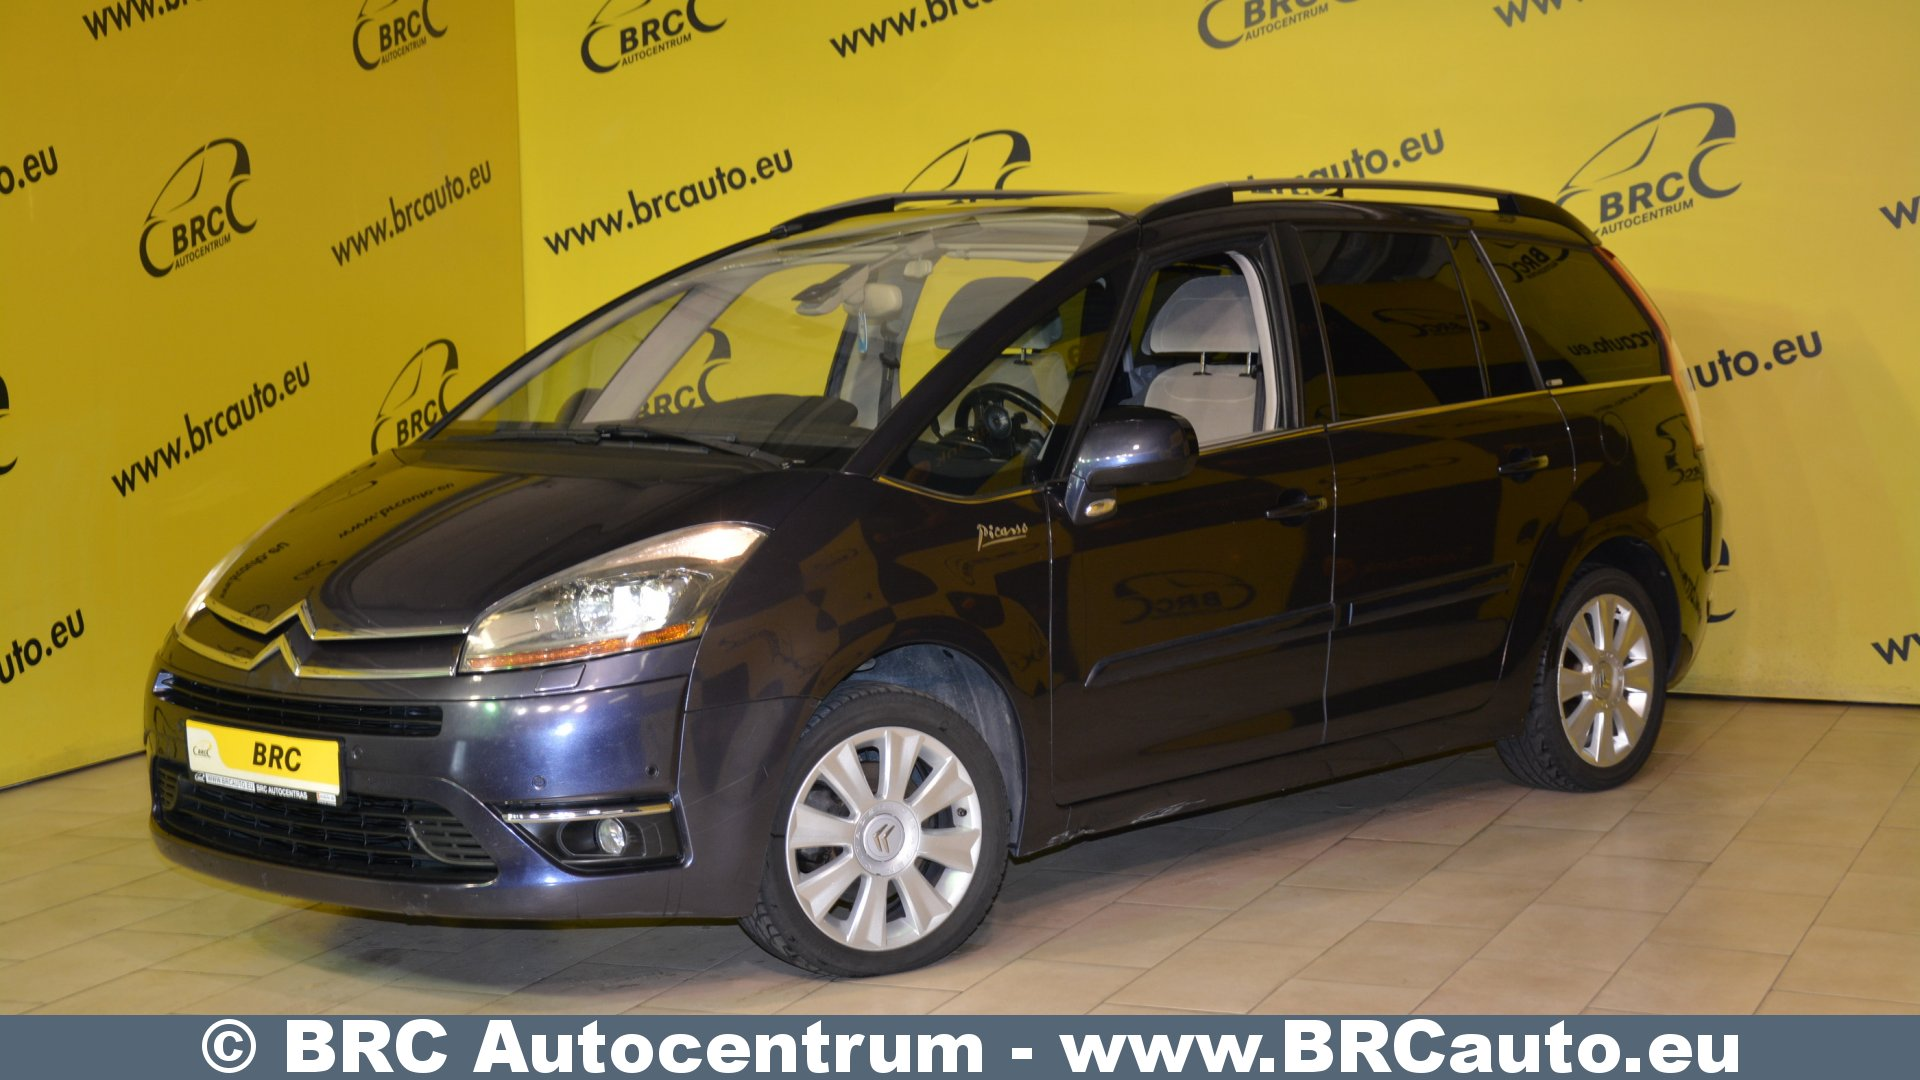 citroen grand c4 picasso exclusive automatas no 256 brc autocentrum. Black Bedroom Furniture Sets. Home Design Ideas